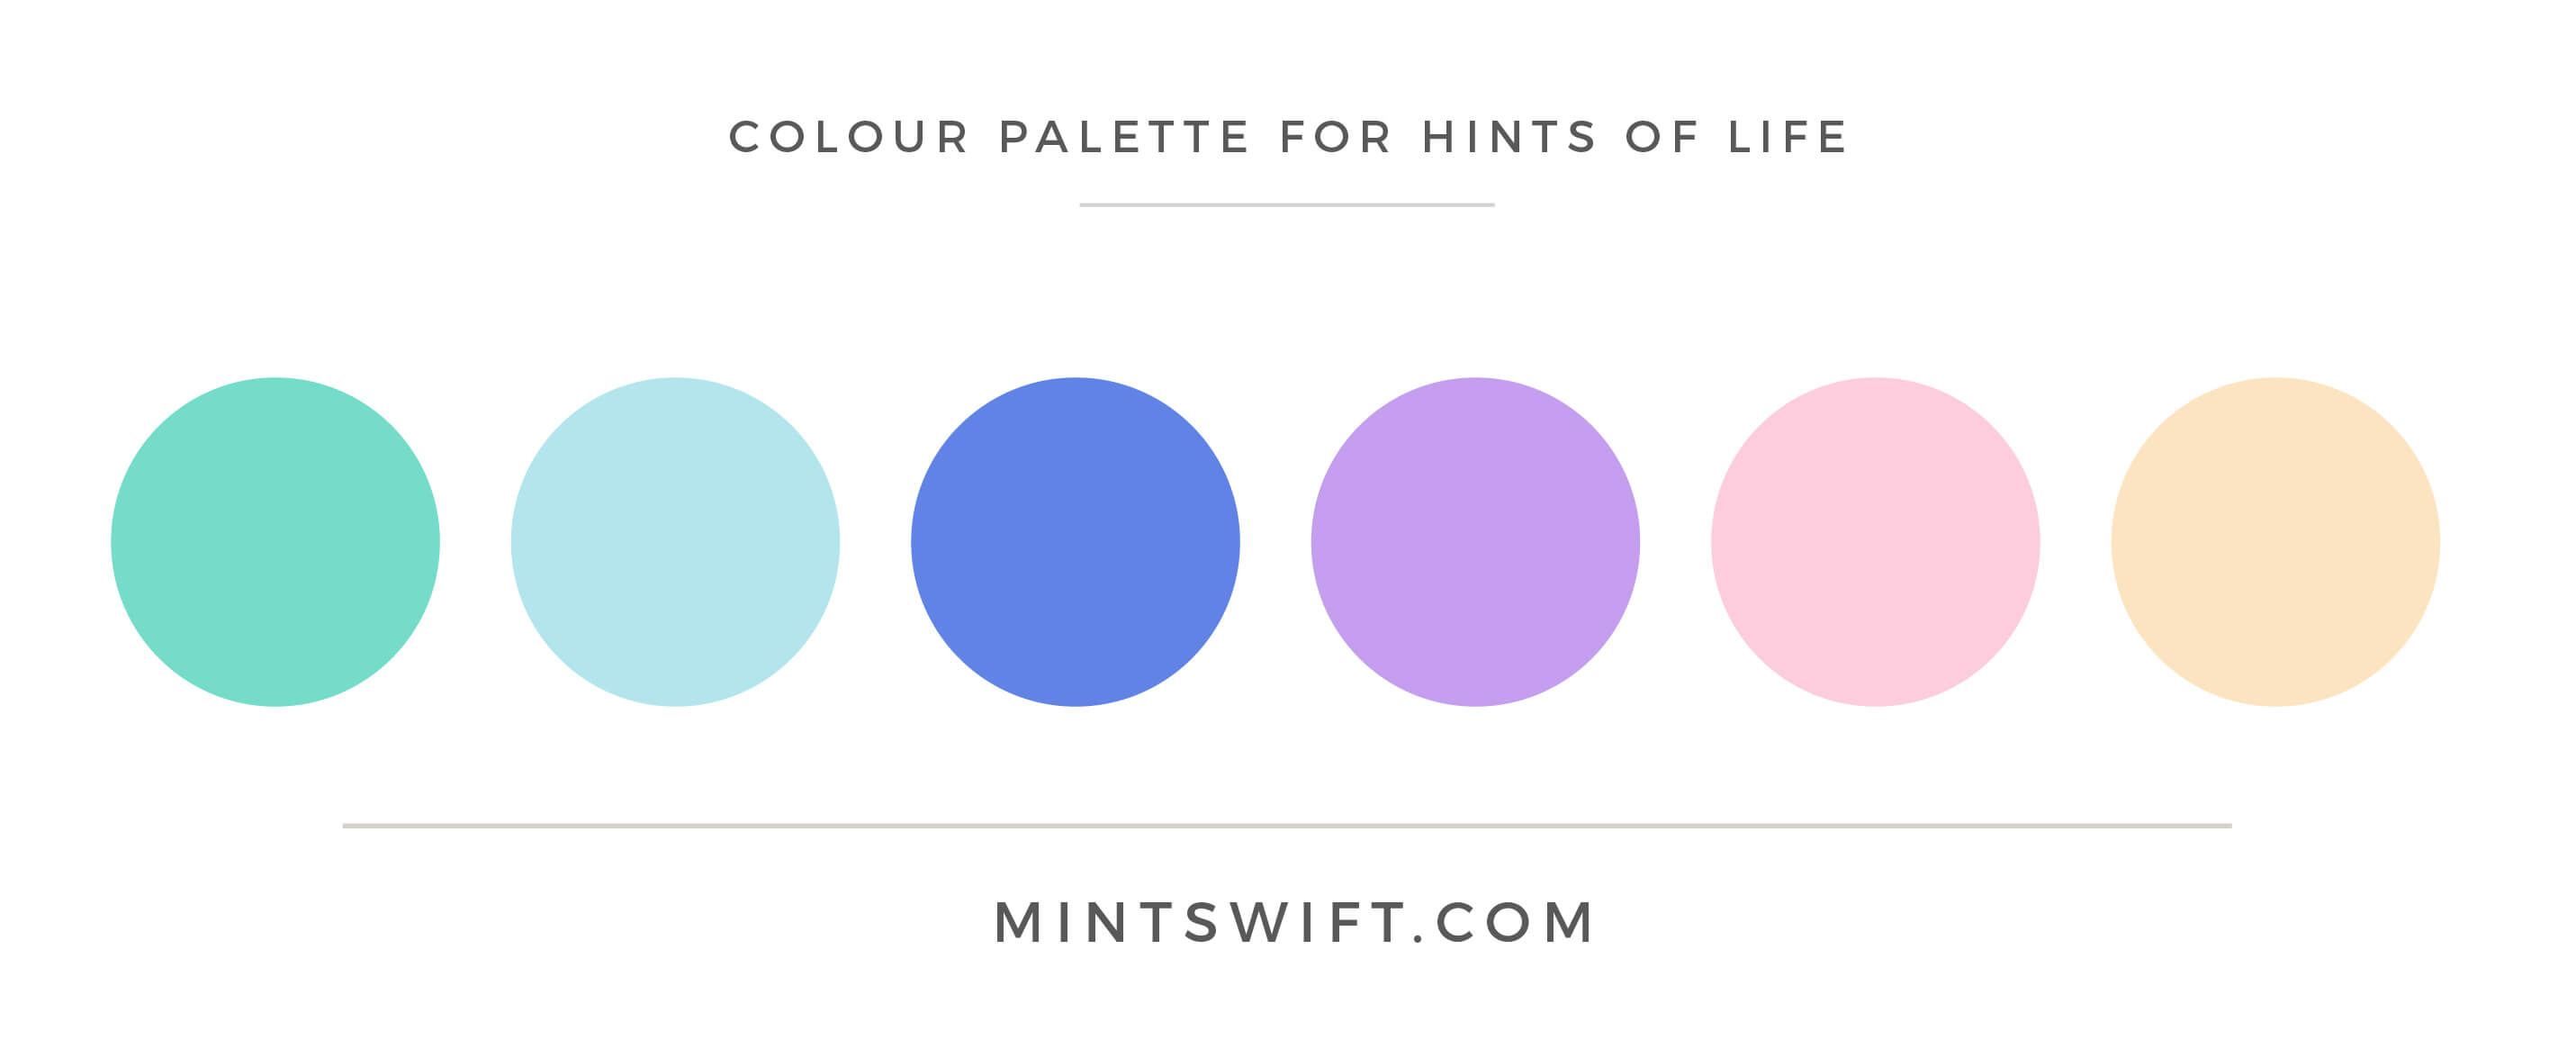 Hints of Life - Colour Palette - Brand Design Package - MintSwift